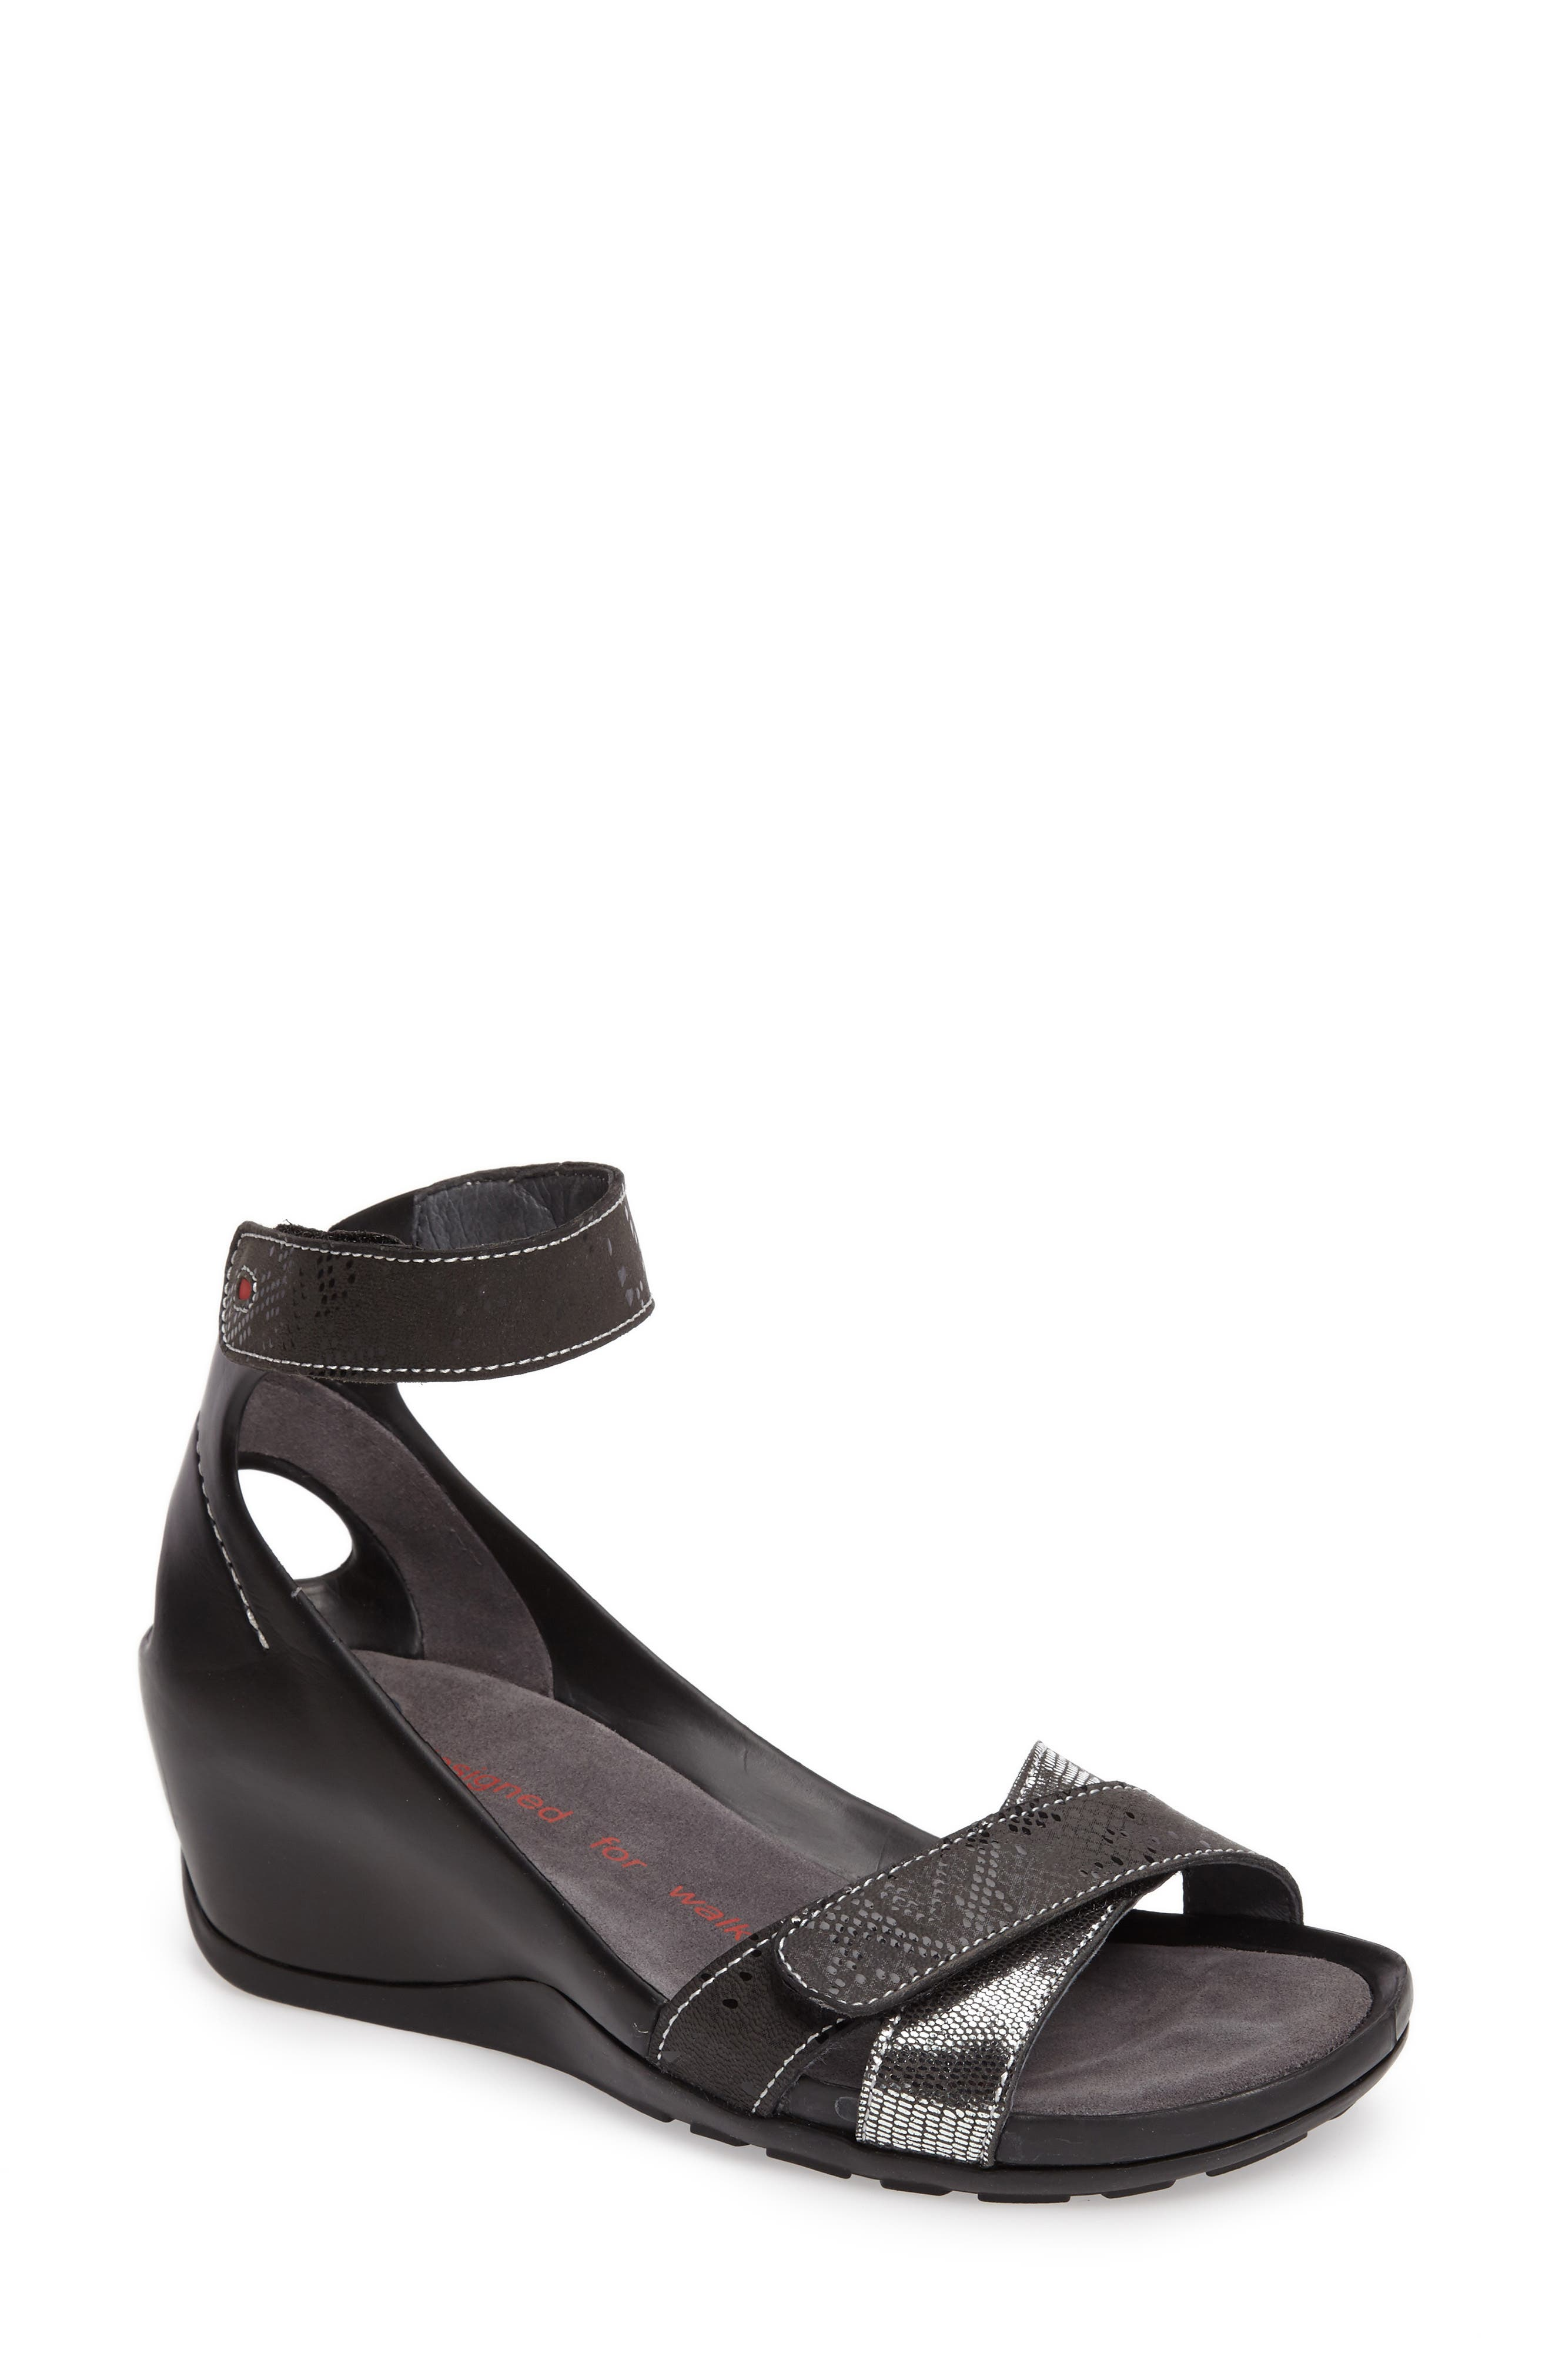 Main Image - Wolky Do Wedge Sandal (Women)